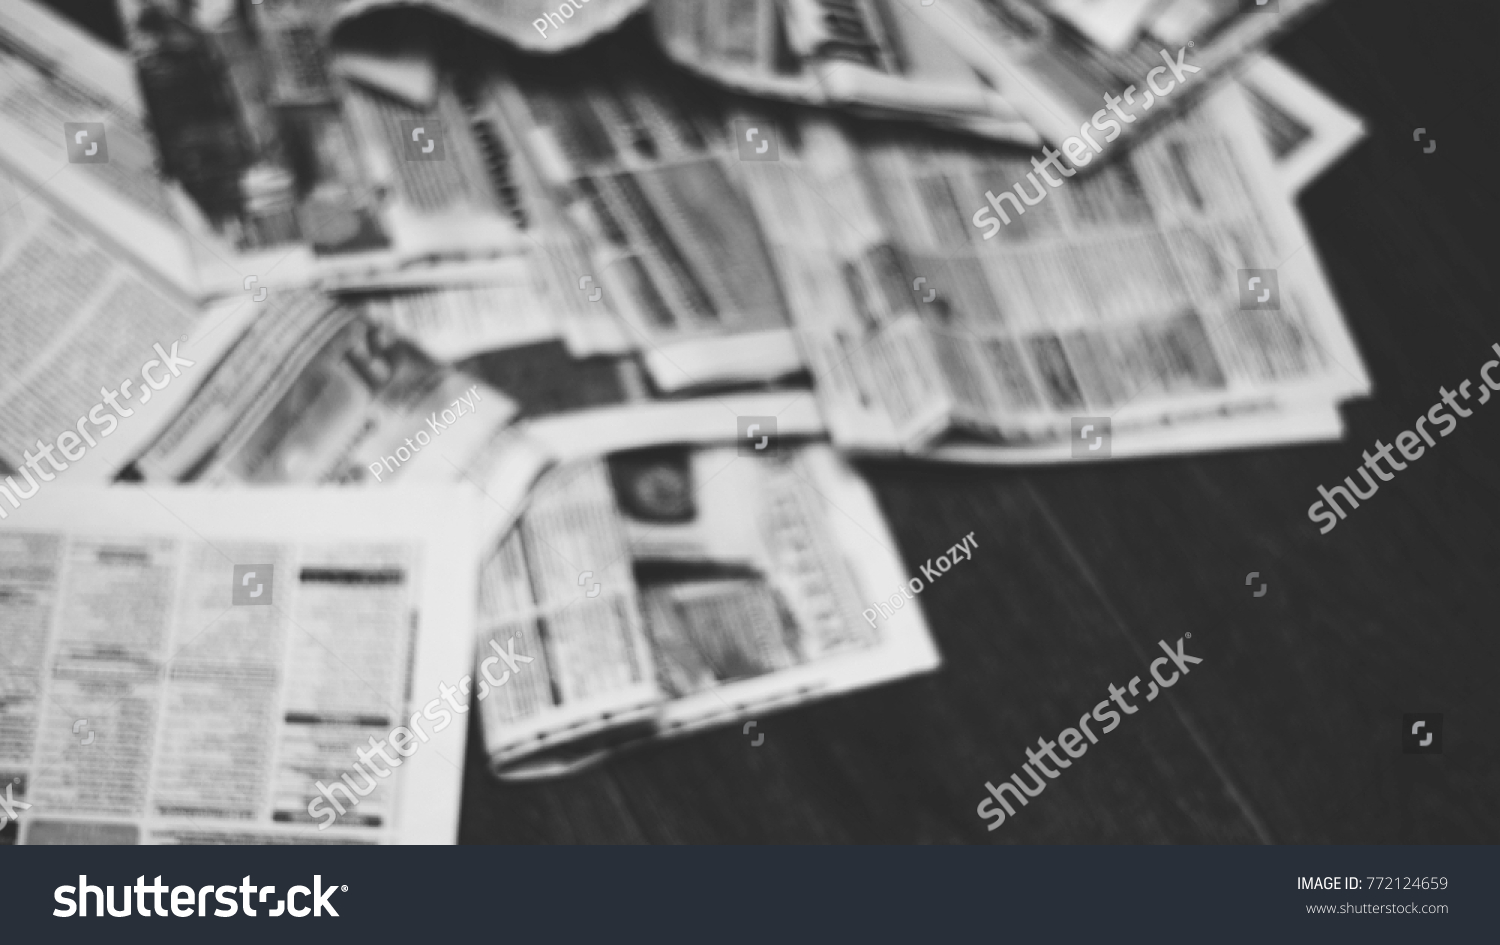 old newspapers scattered on wooden floor stock photo (edit now